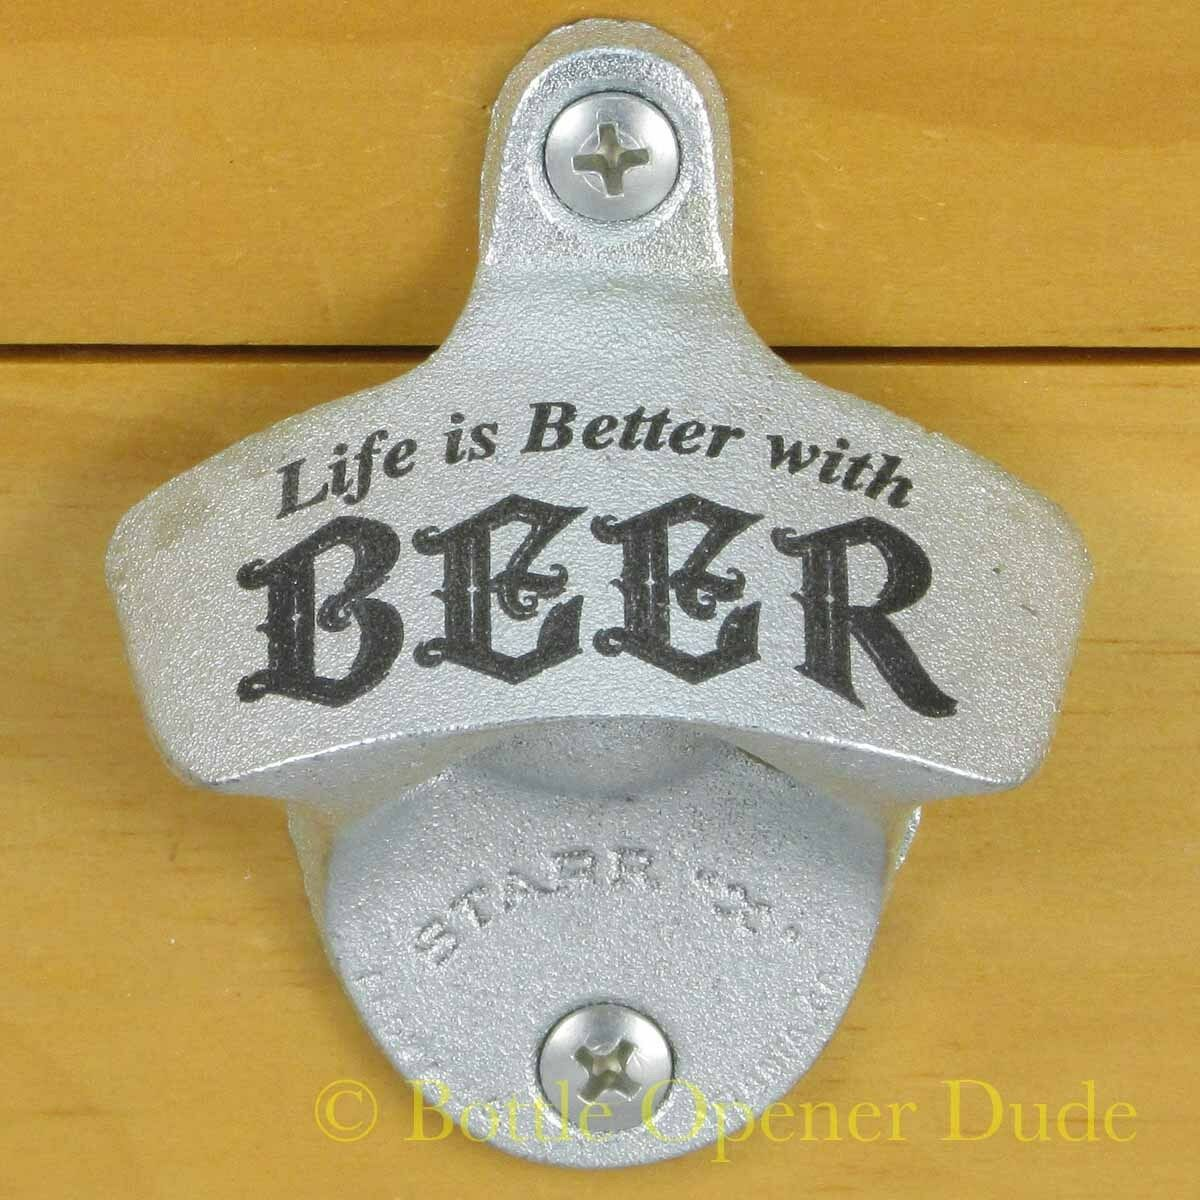 LIFE IS BETTER WITH BEER Starr X Wall Mount Stationary Metal